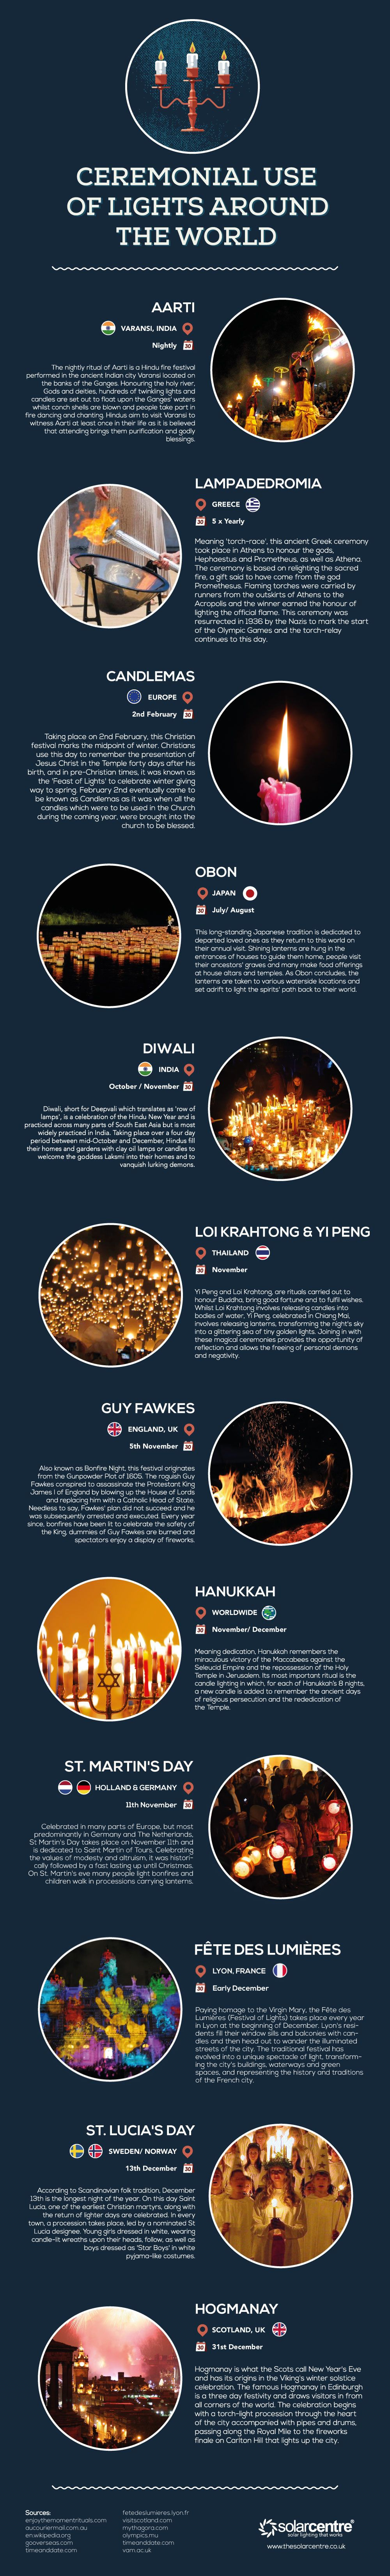 Ceremonial Use of Lights Around the World #infographic